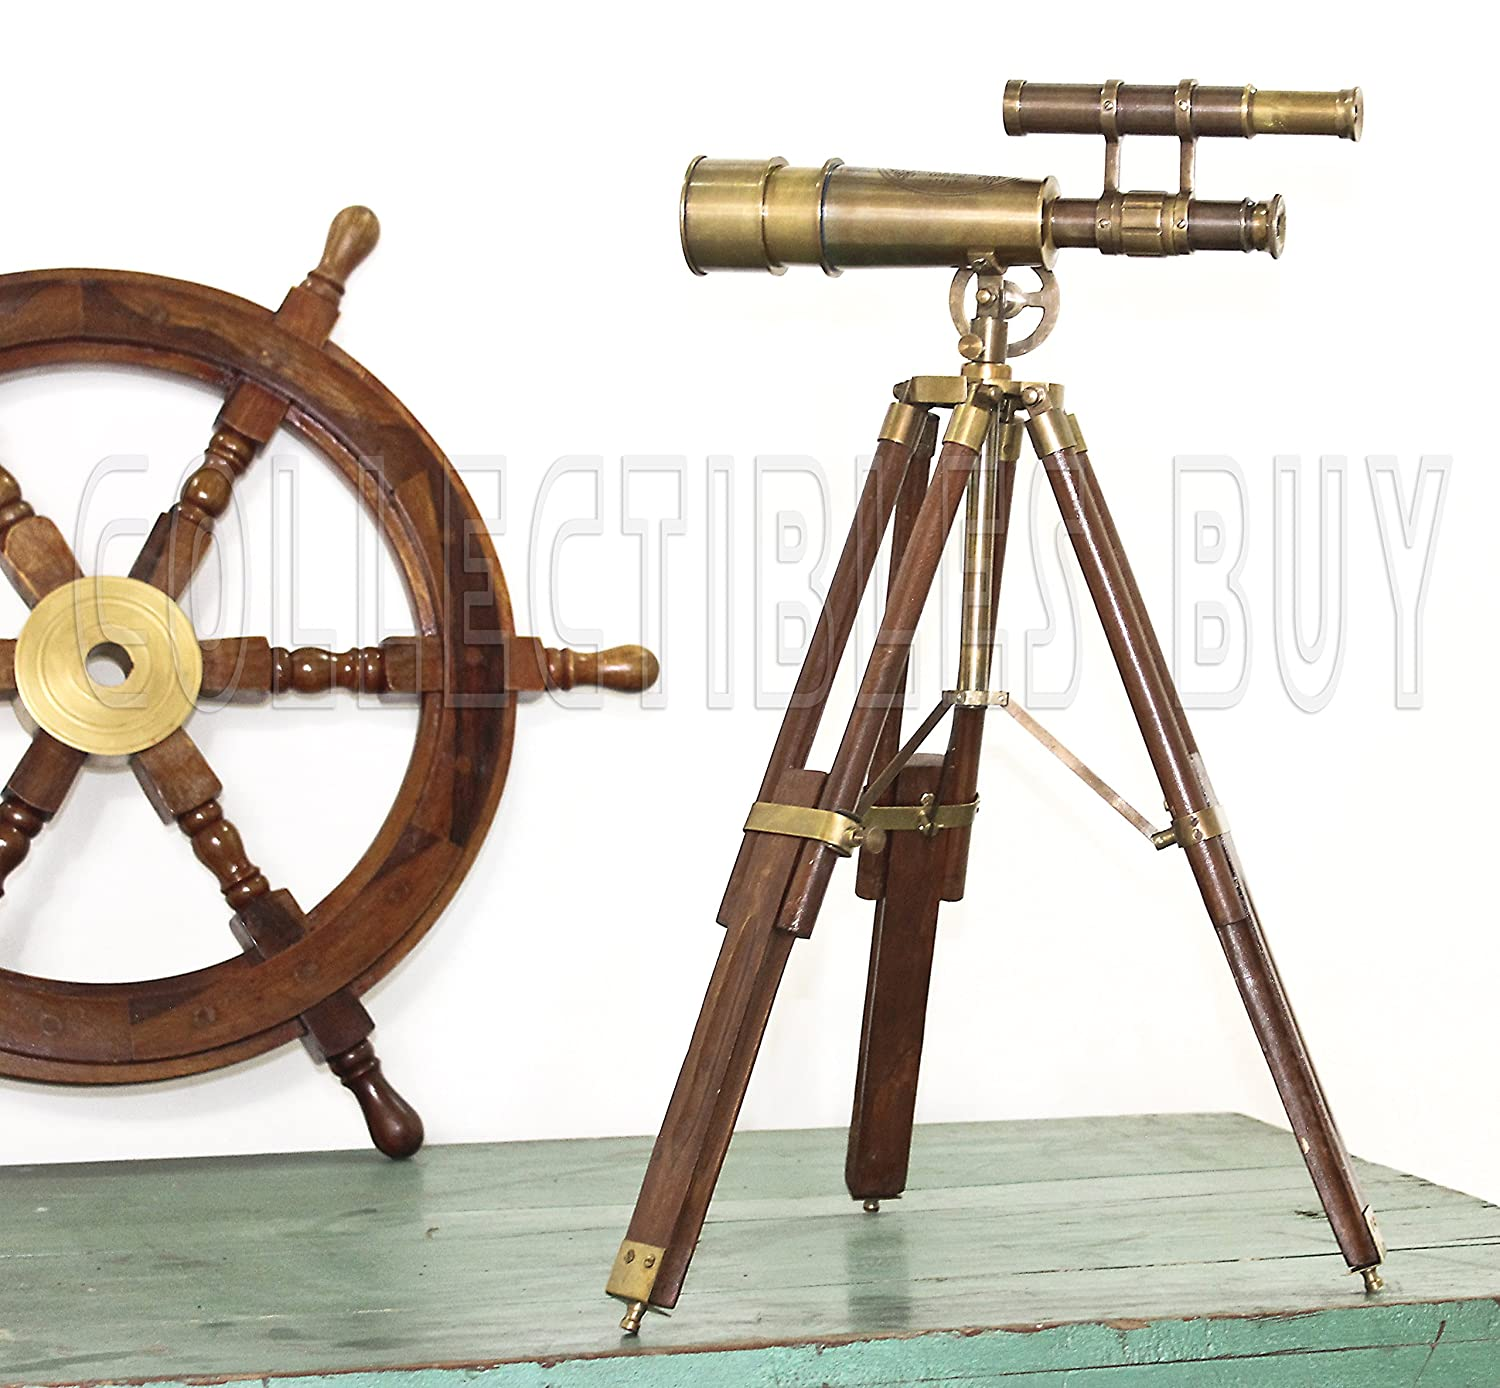 A Table Décor Telescope Vintage Marine Gift Functional Instrument Collectibles Gift Item (Brass Antique + Leather) Collectibles Buy ZTS583